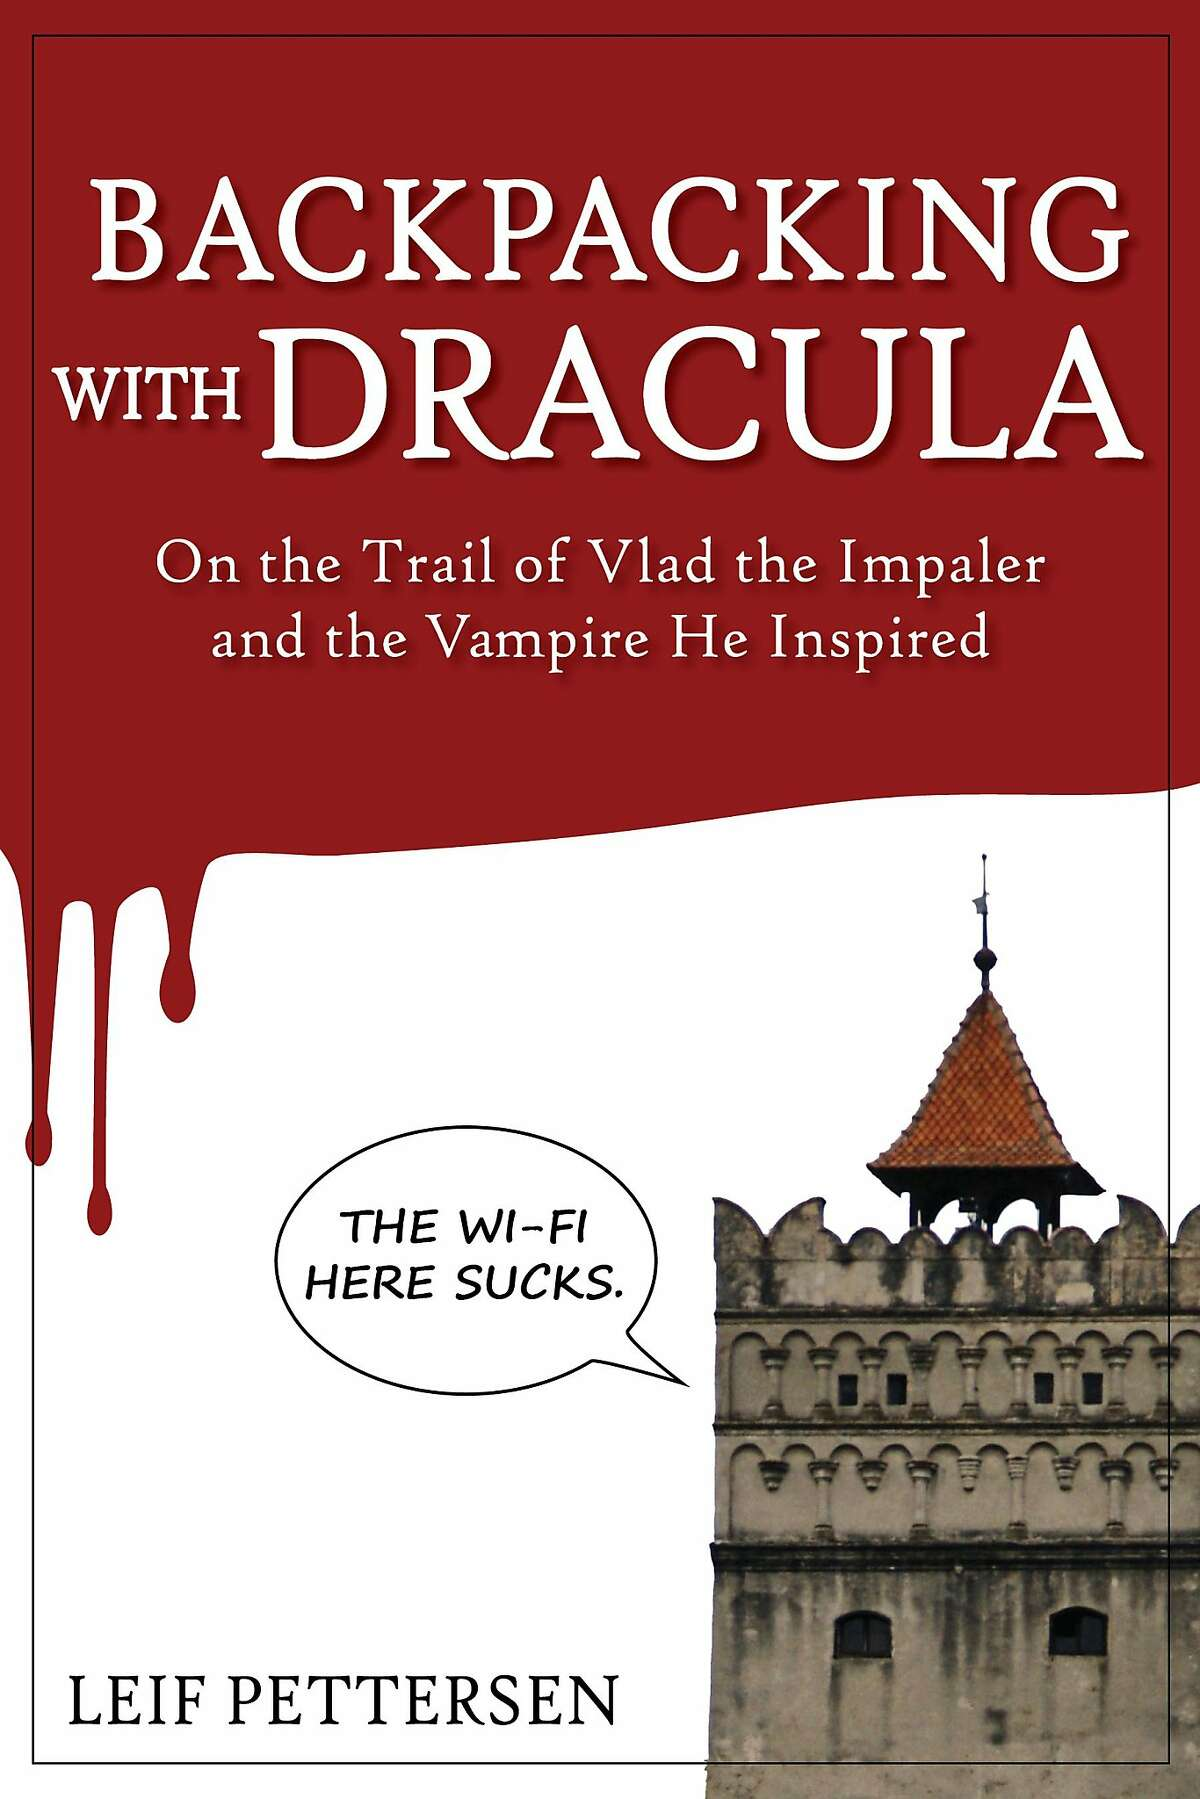 """""""Backpacking with Dracula: On the Trail of Blad the Impaler and the Vampire He Inspired,"""" by Leif Pettersen"""